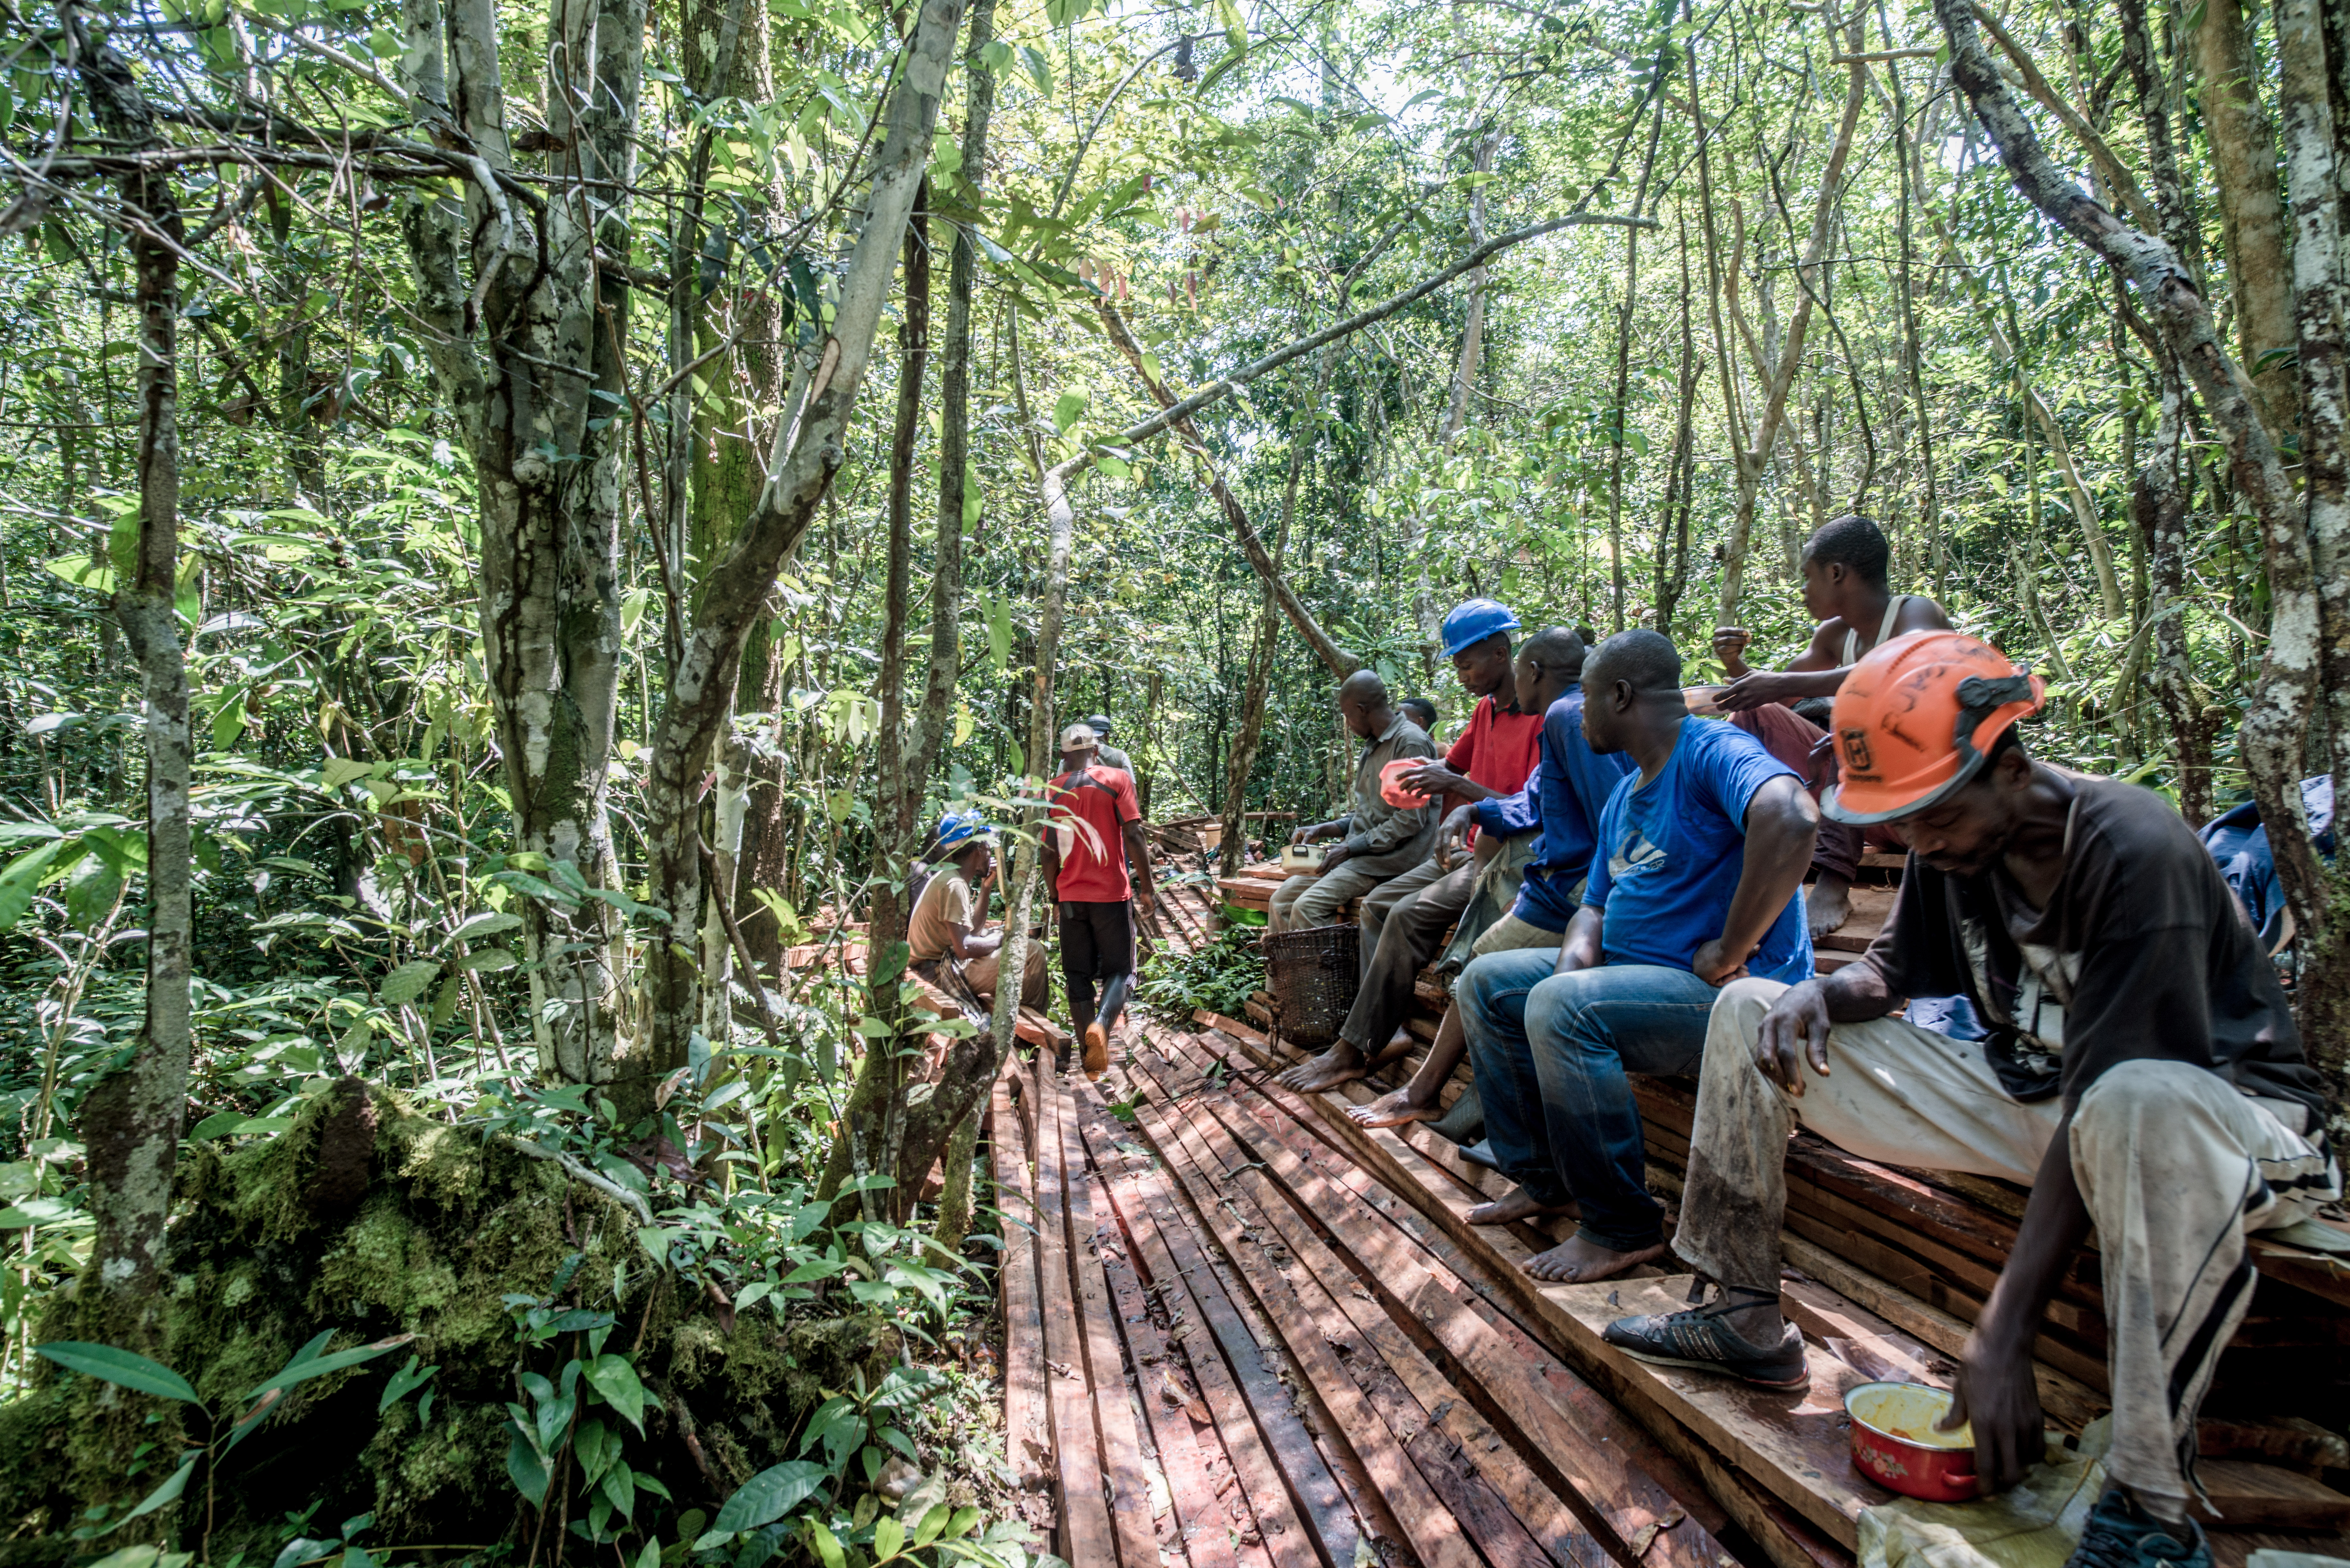 Workers take a break from constructing the boardwalk between Lokofa and Bekalikali Bai in Salonga National Park, DRC. This boardwalk will make it easier for researchers and visitors to travel between the two sites. (Photo courtesy of WWF)